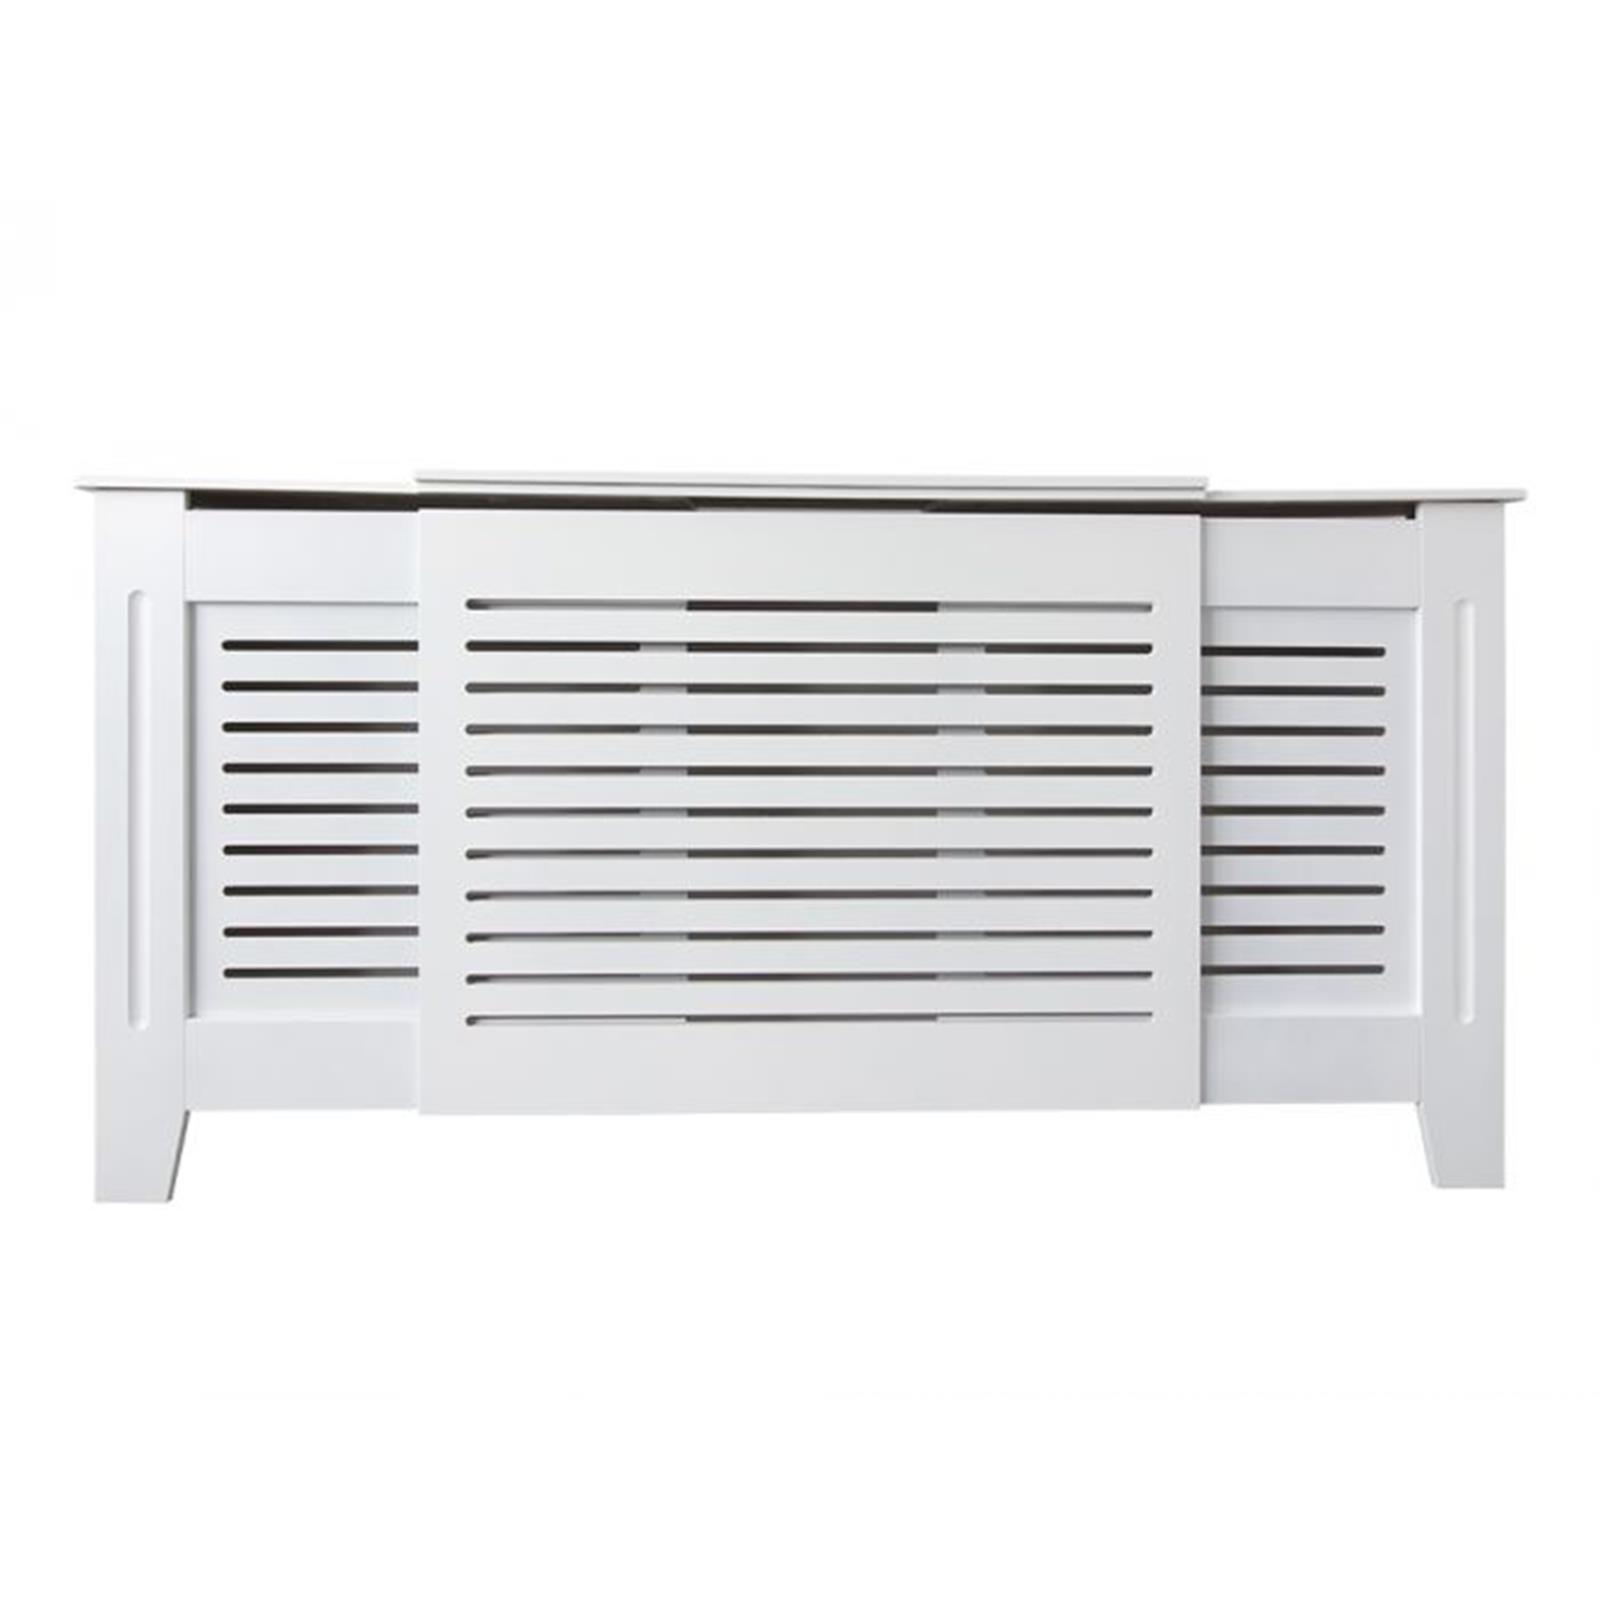 White-Radiator-Cover-Cabinet-Small-Large-Modern-MDF-Slat-Wood-Grill-Furniture miniatuur 22